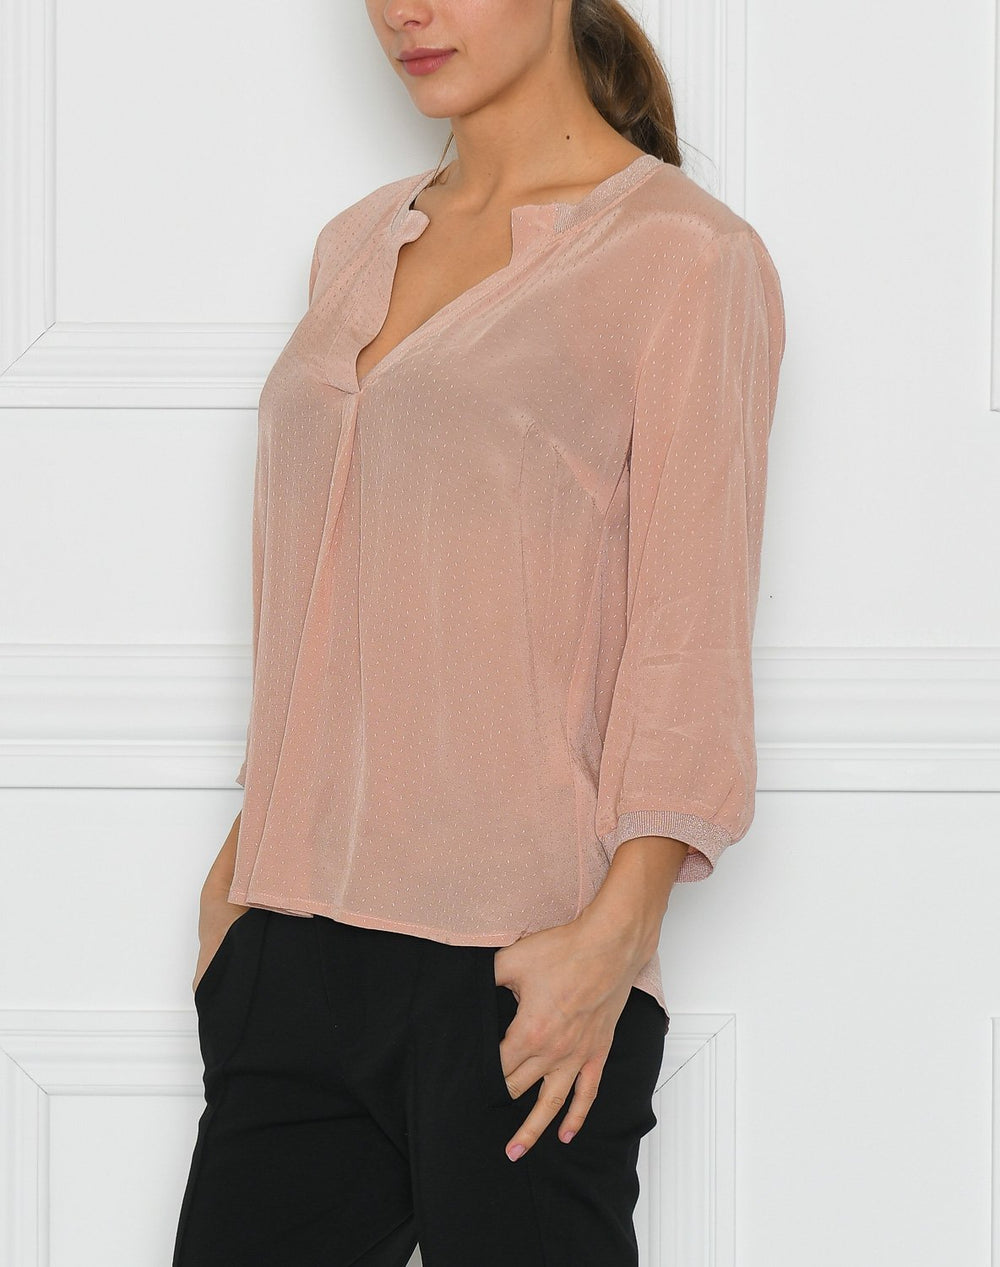 Luxzuz Paulina bluse dusty powder - Online-Mode